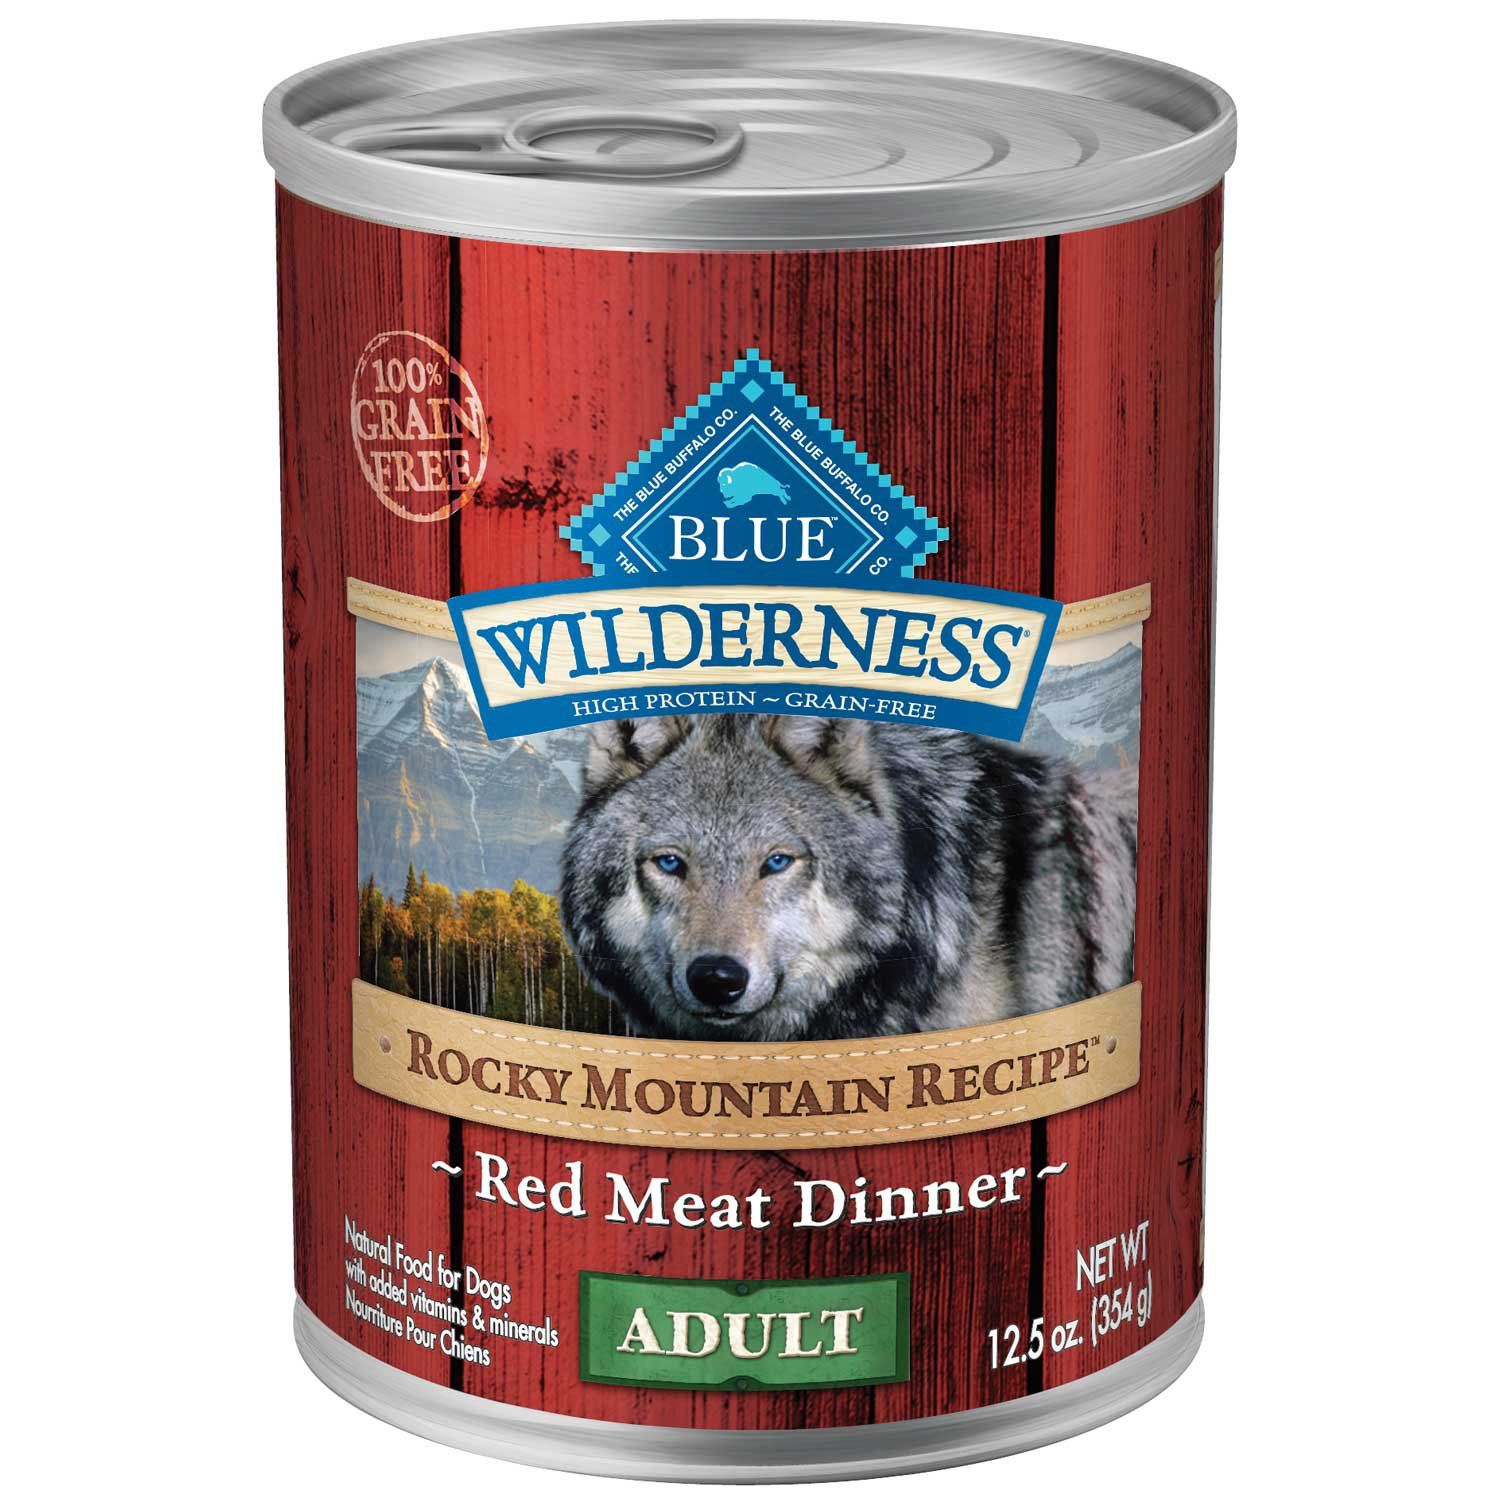 Wilderness Canned Dog Food